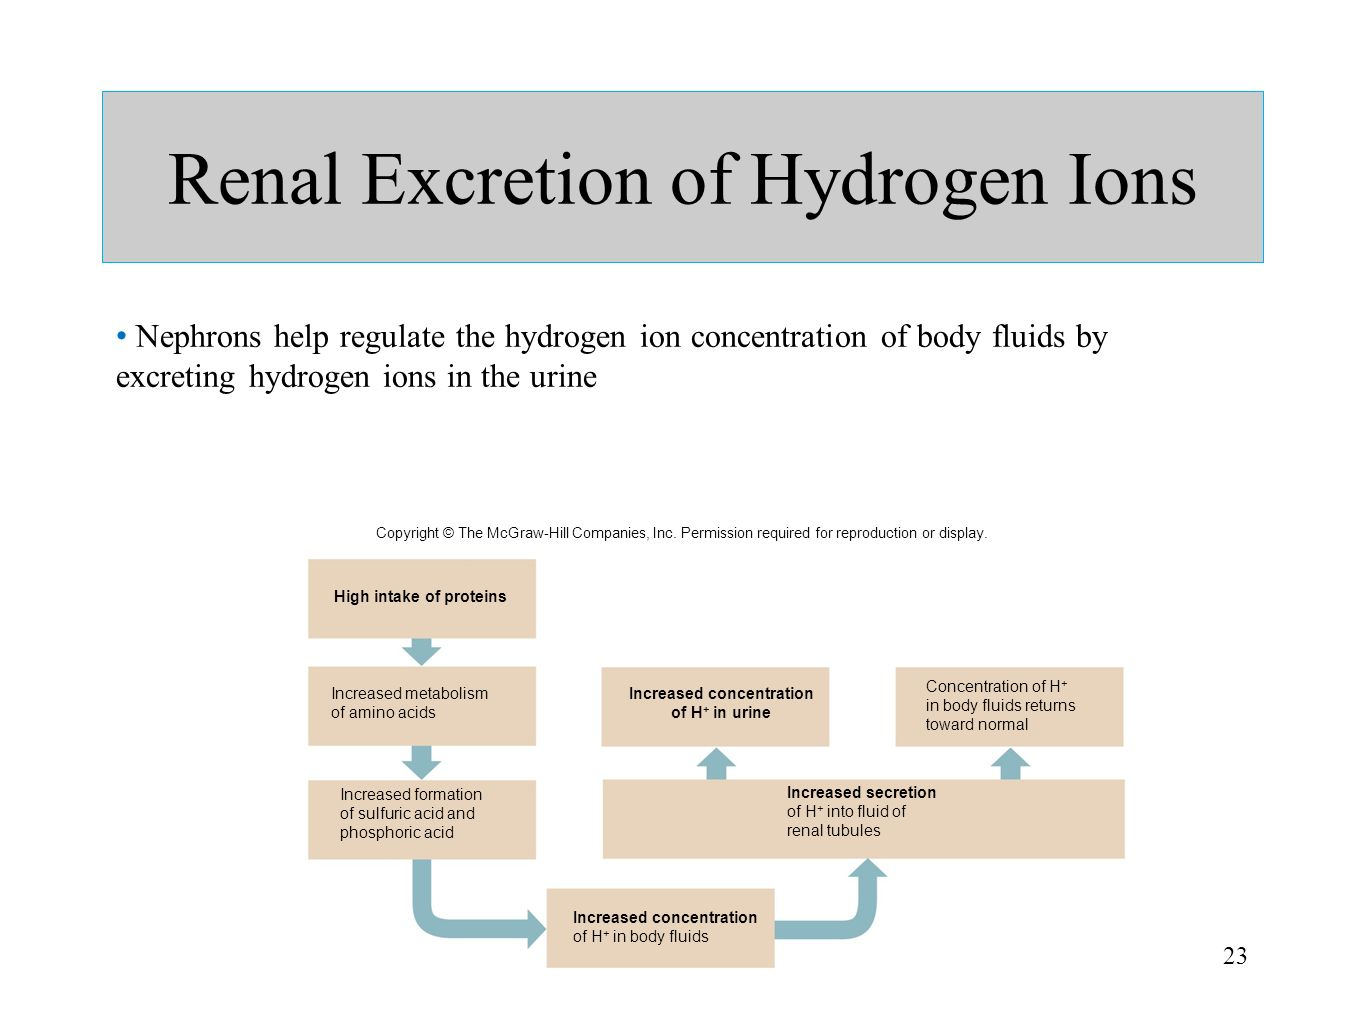 Renal Excretion of Hydrogen Ions